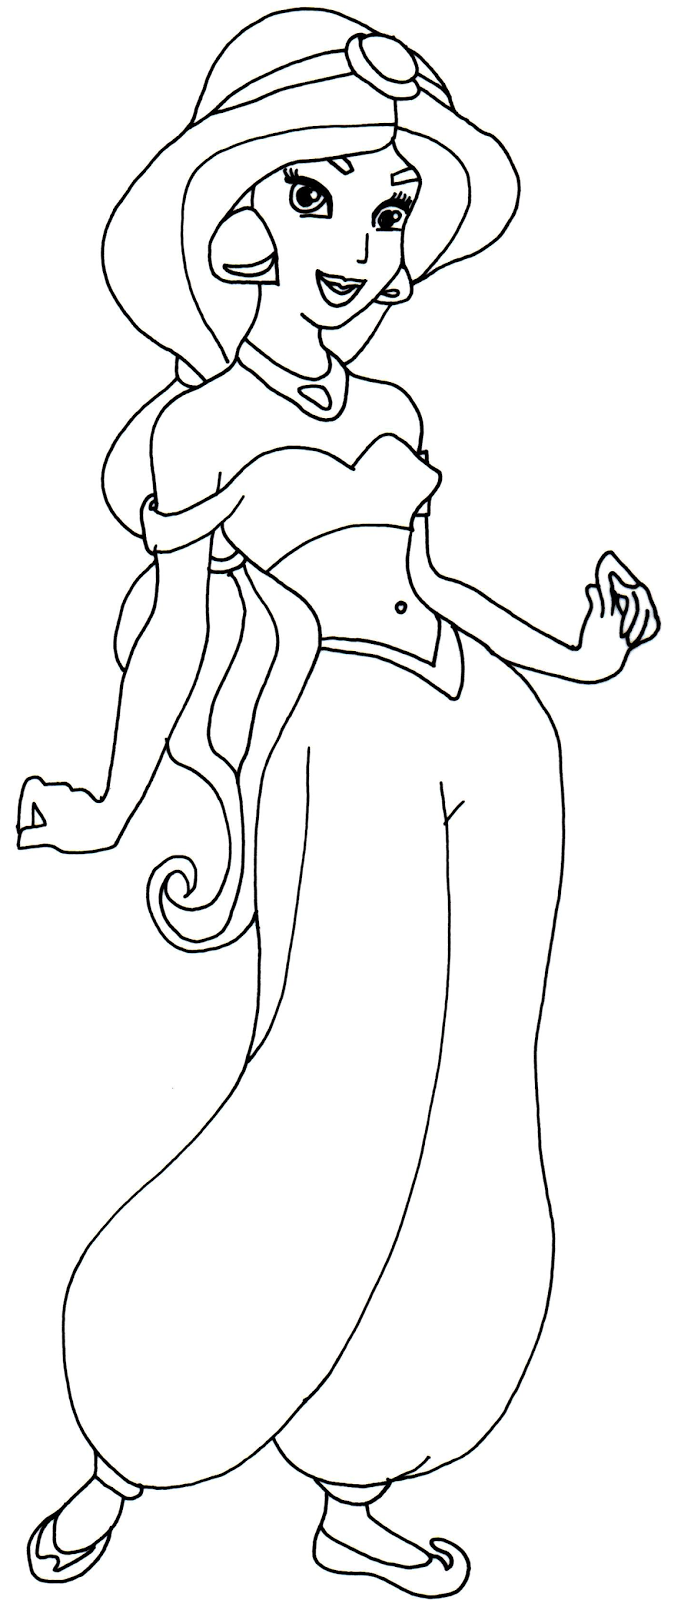 Coloring Online For 9 Year Olds : Princess jasmine coloring pages to download and print for free